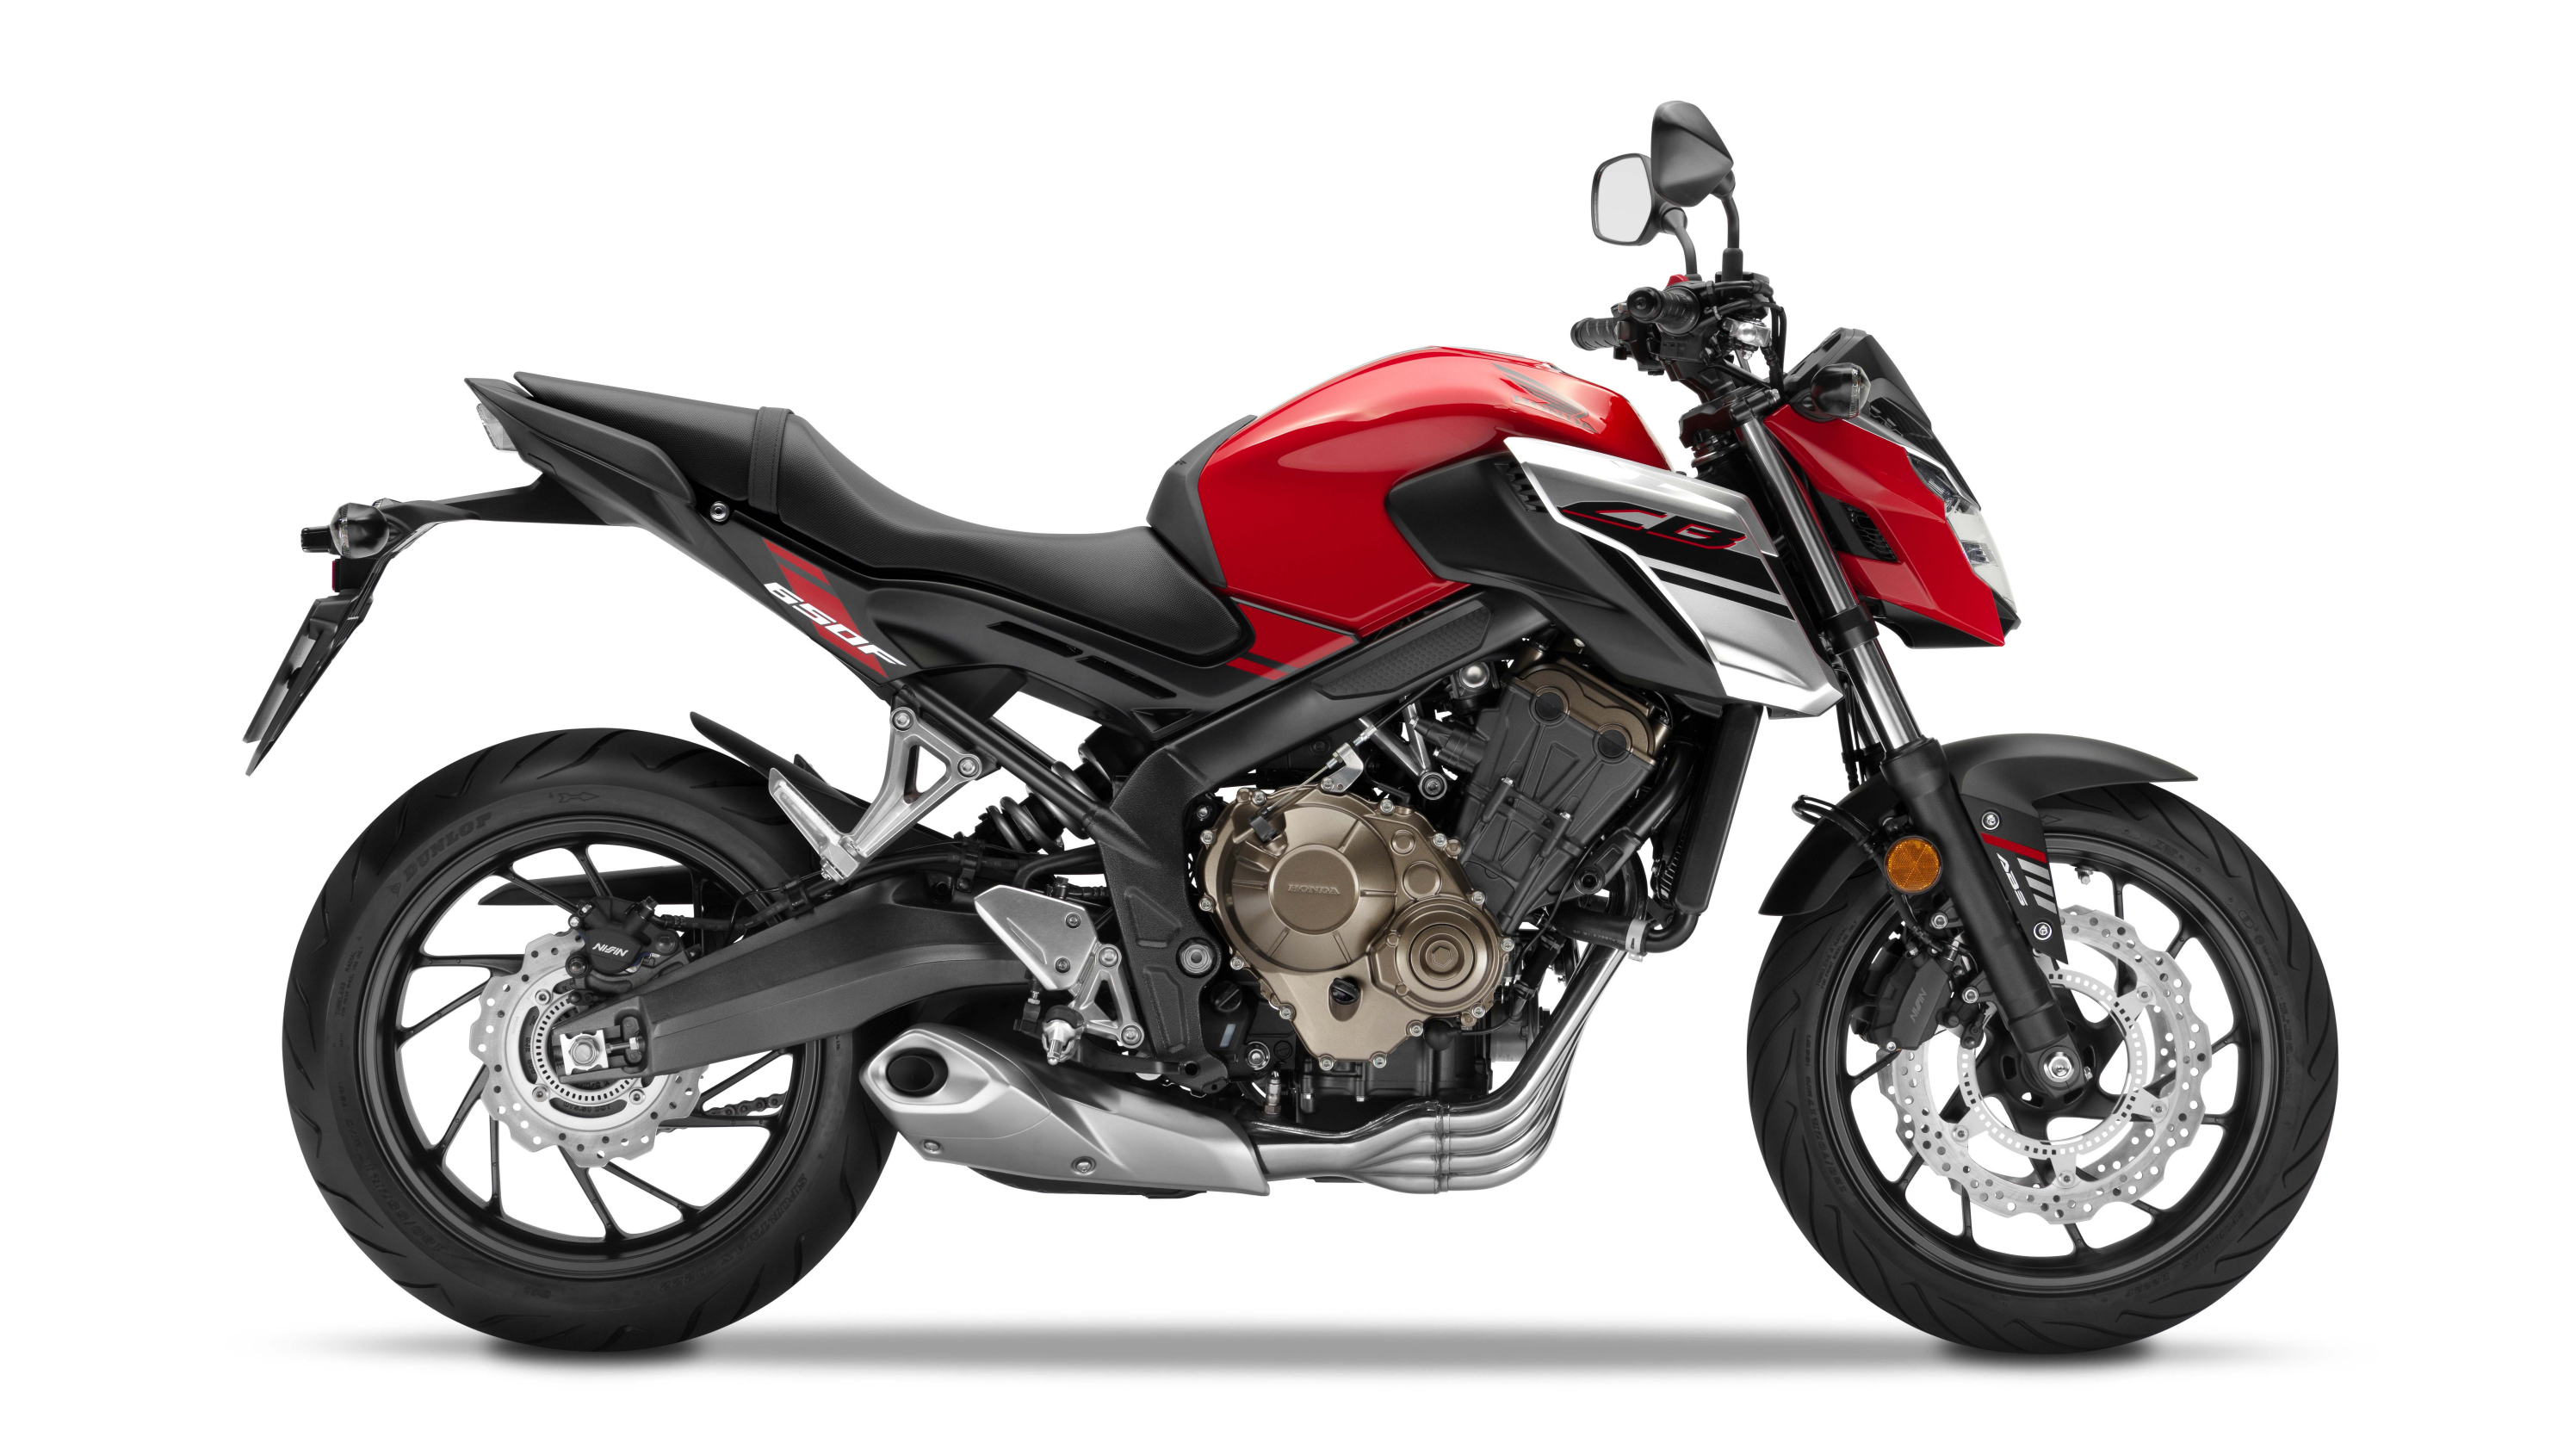 2018 Honda CB650F: How Does It Stack Up With The FZ-07 And ...